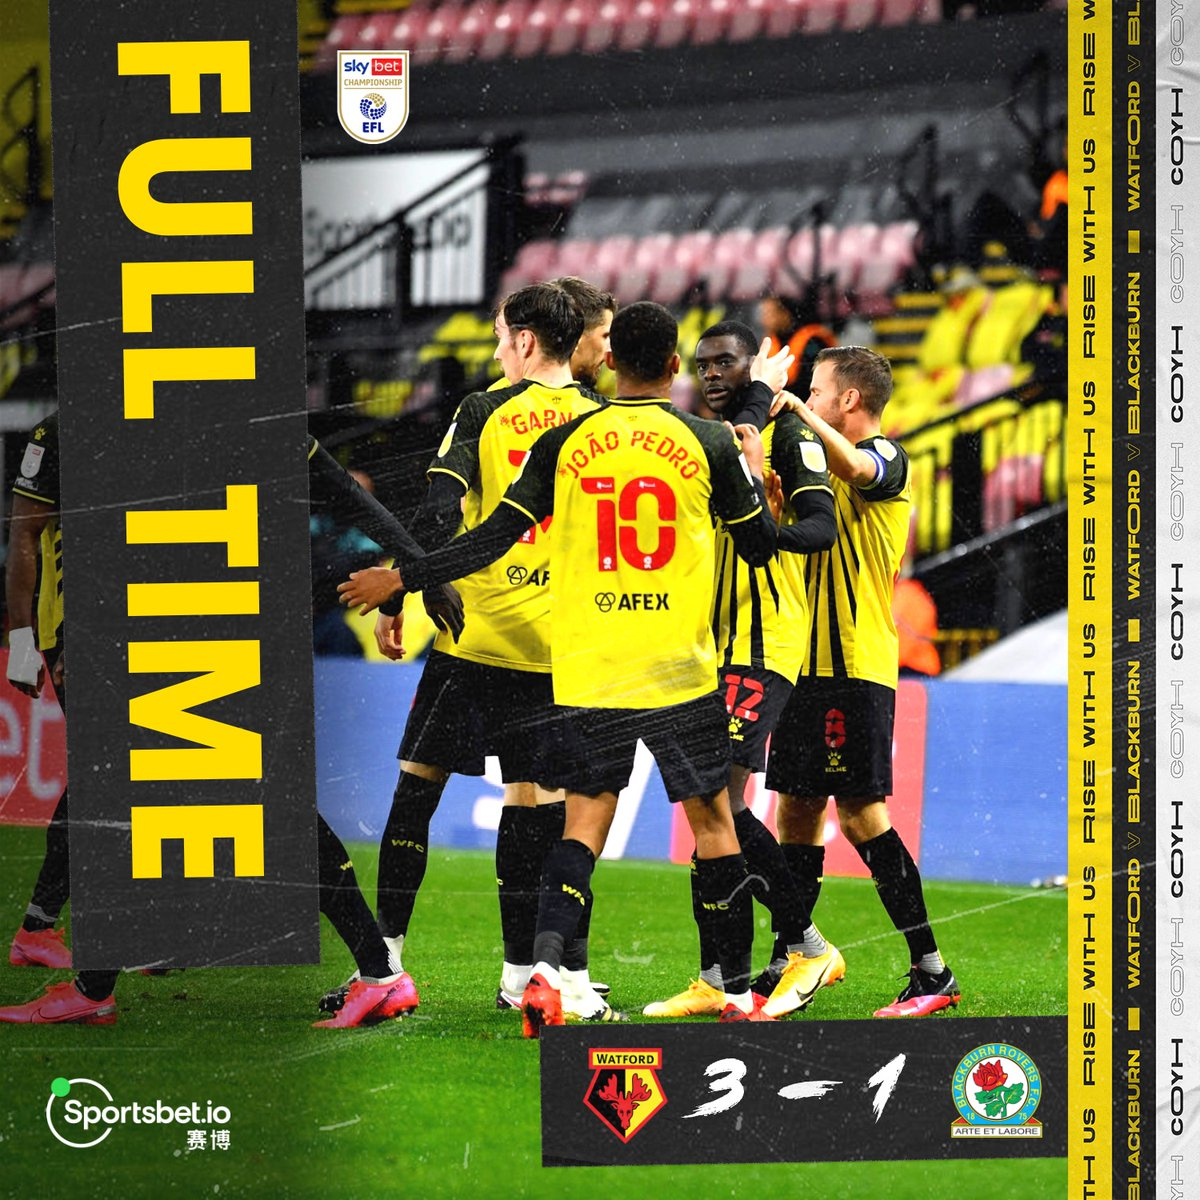 Watford Football Club @WatfordFC